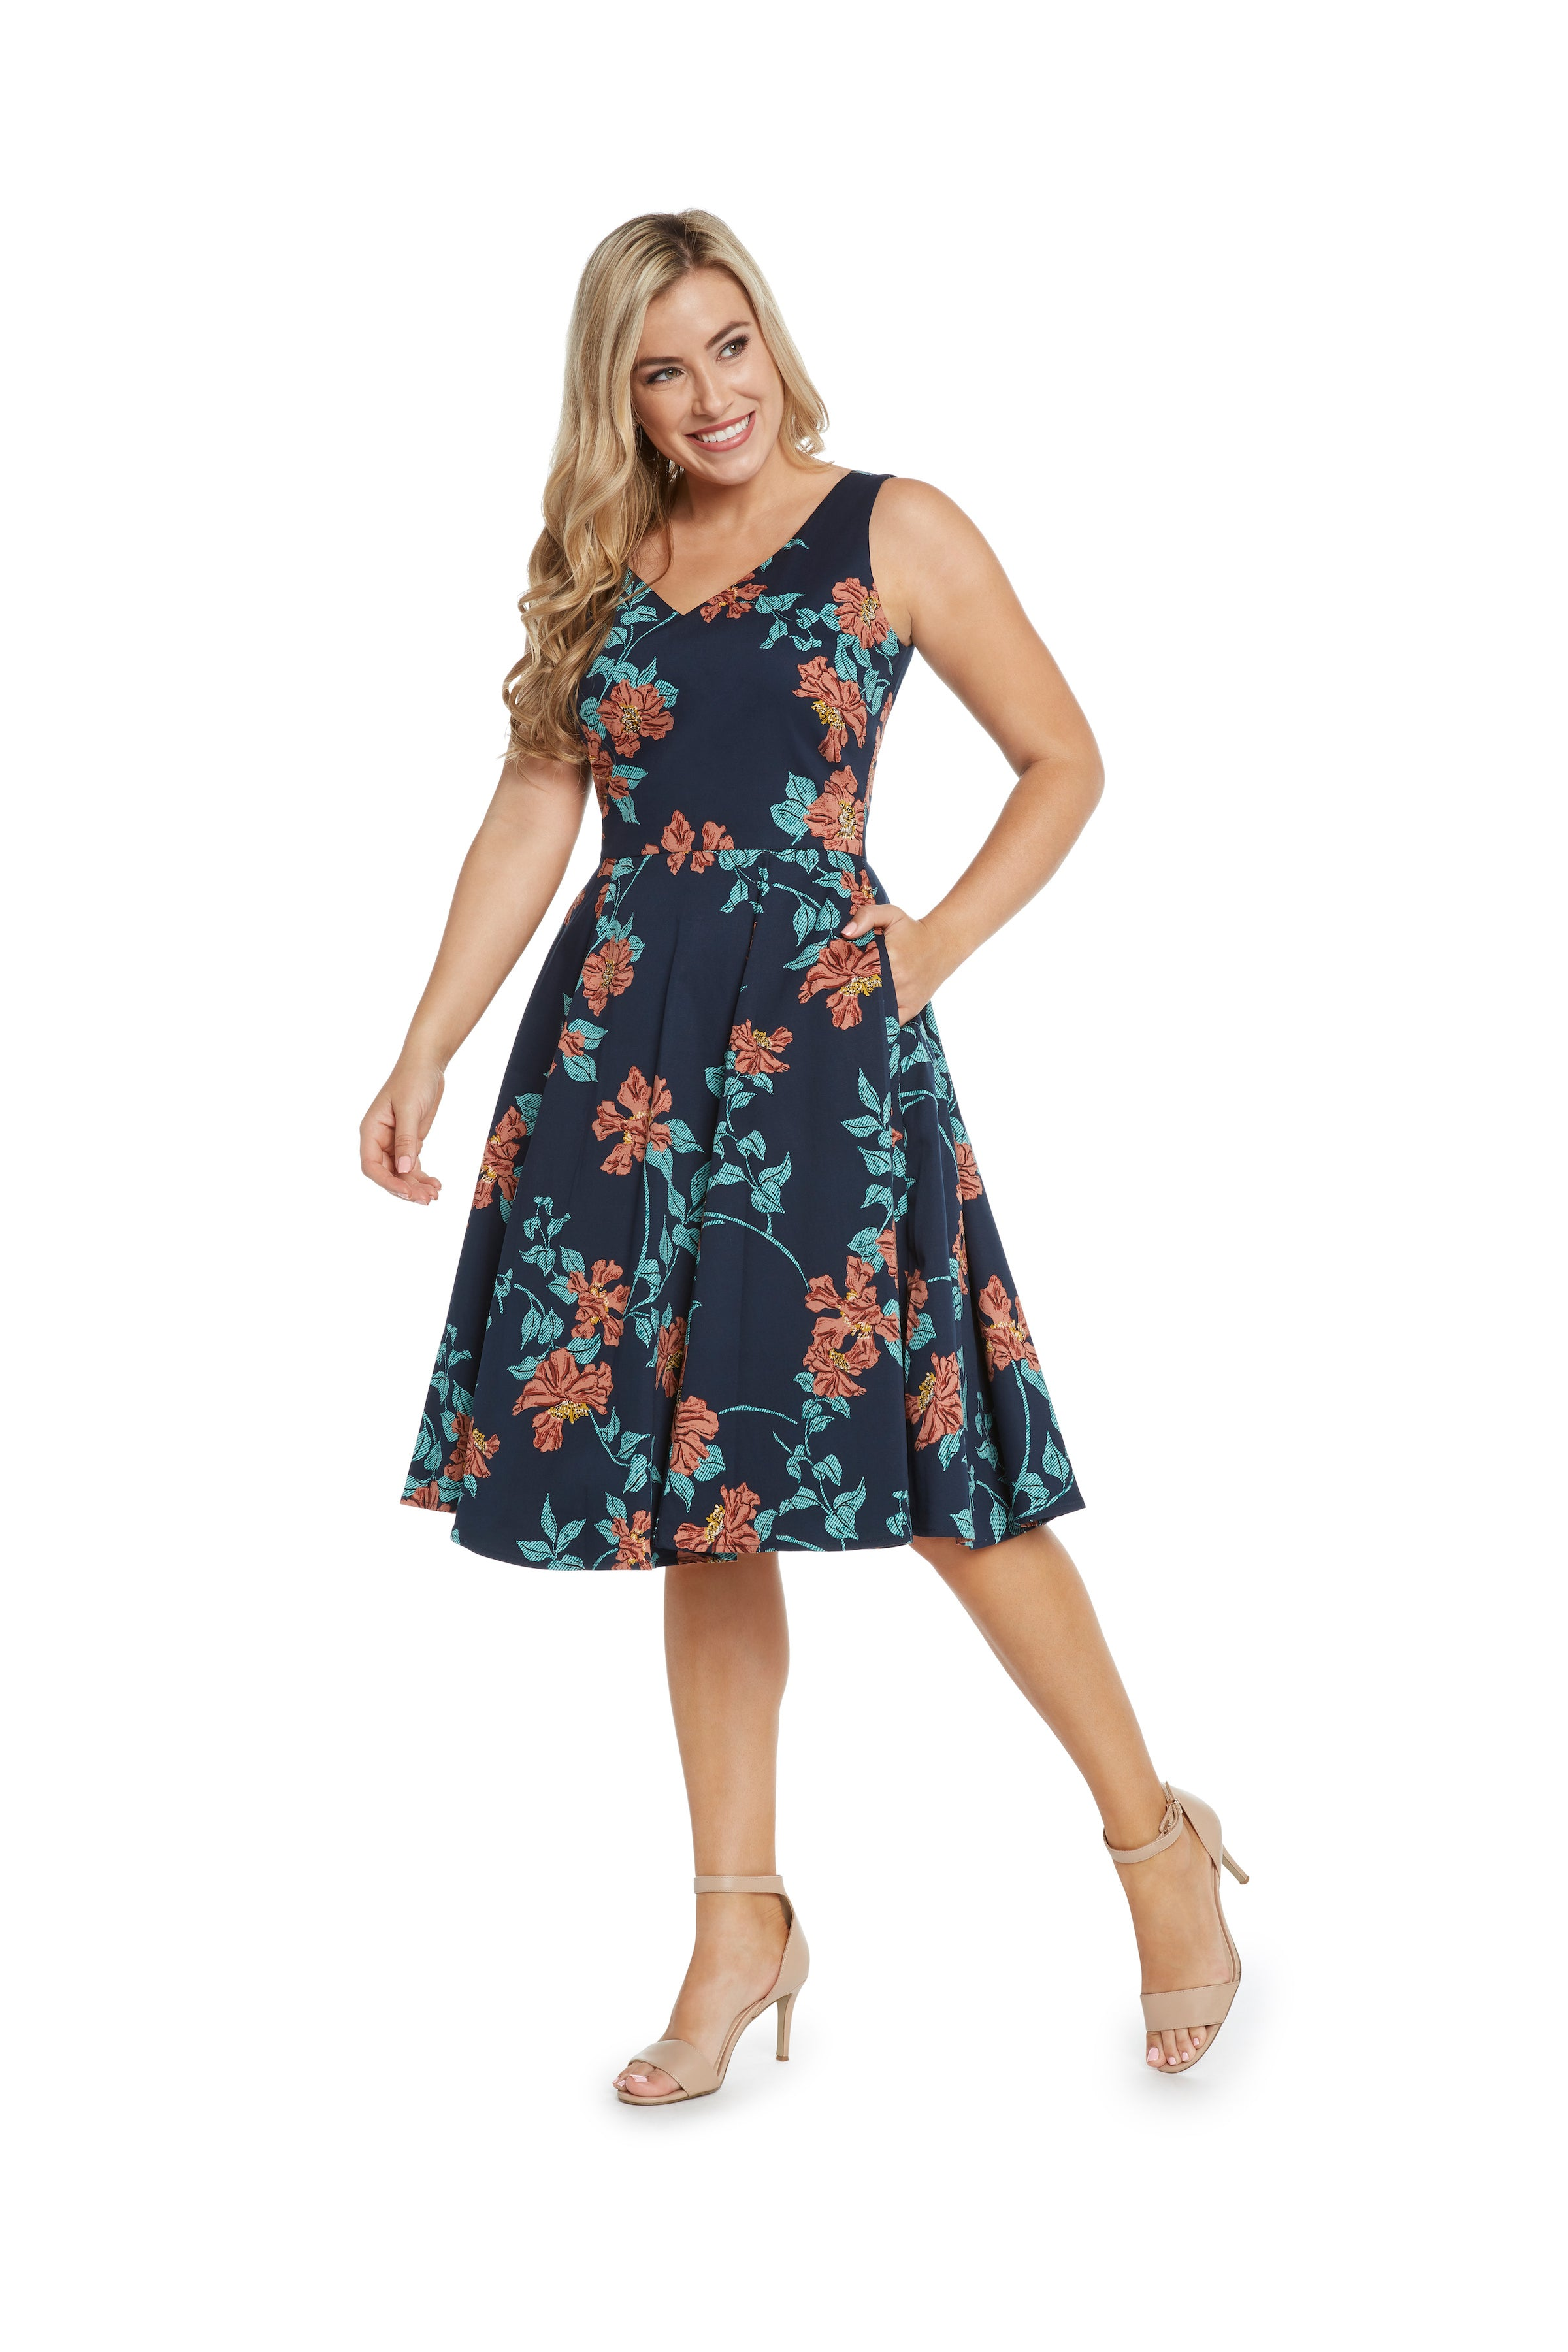 Navy V-Neck Dress with Coral Flowers by Eva Rose